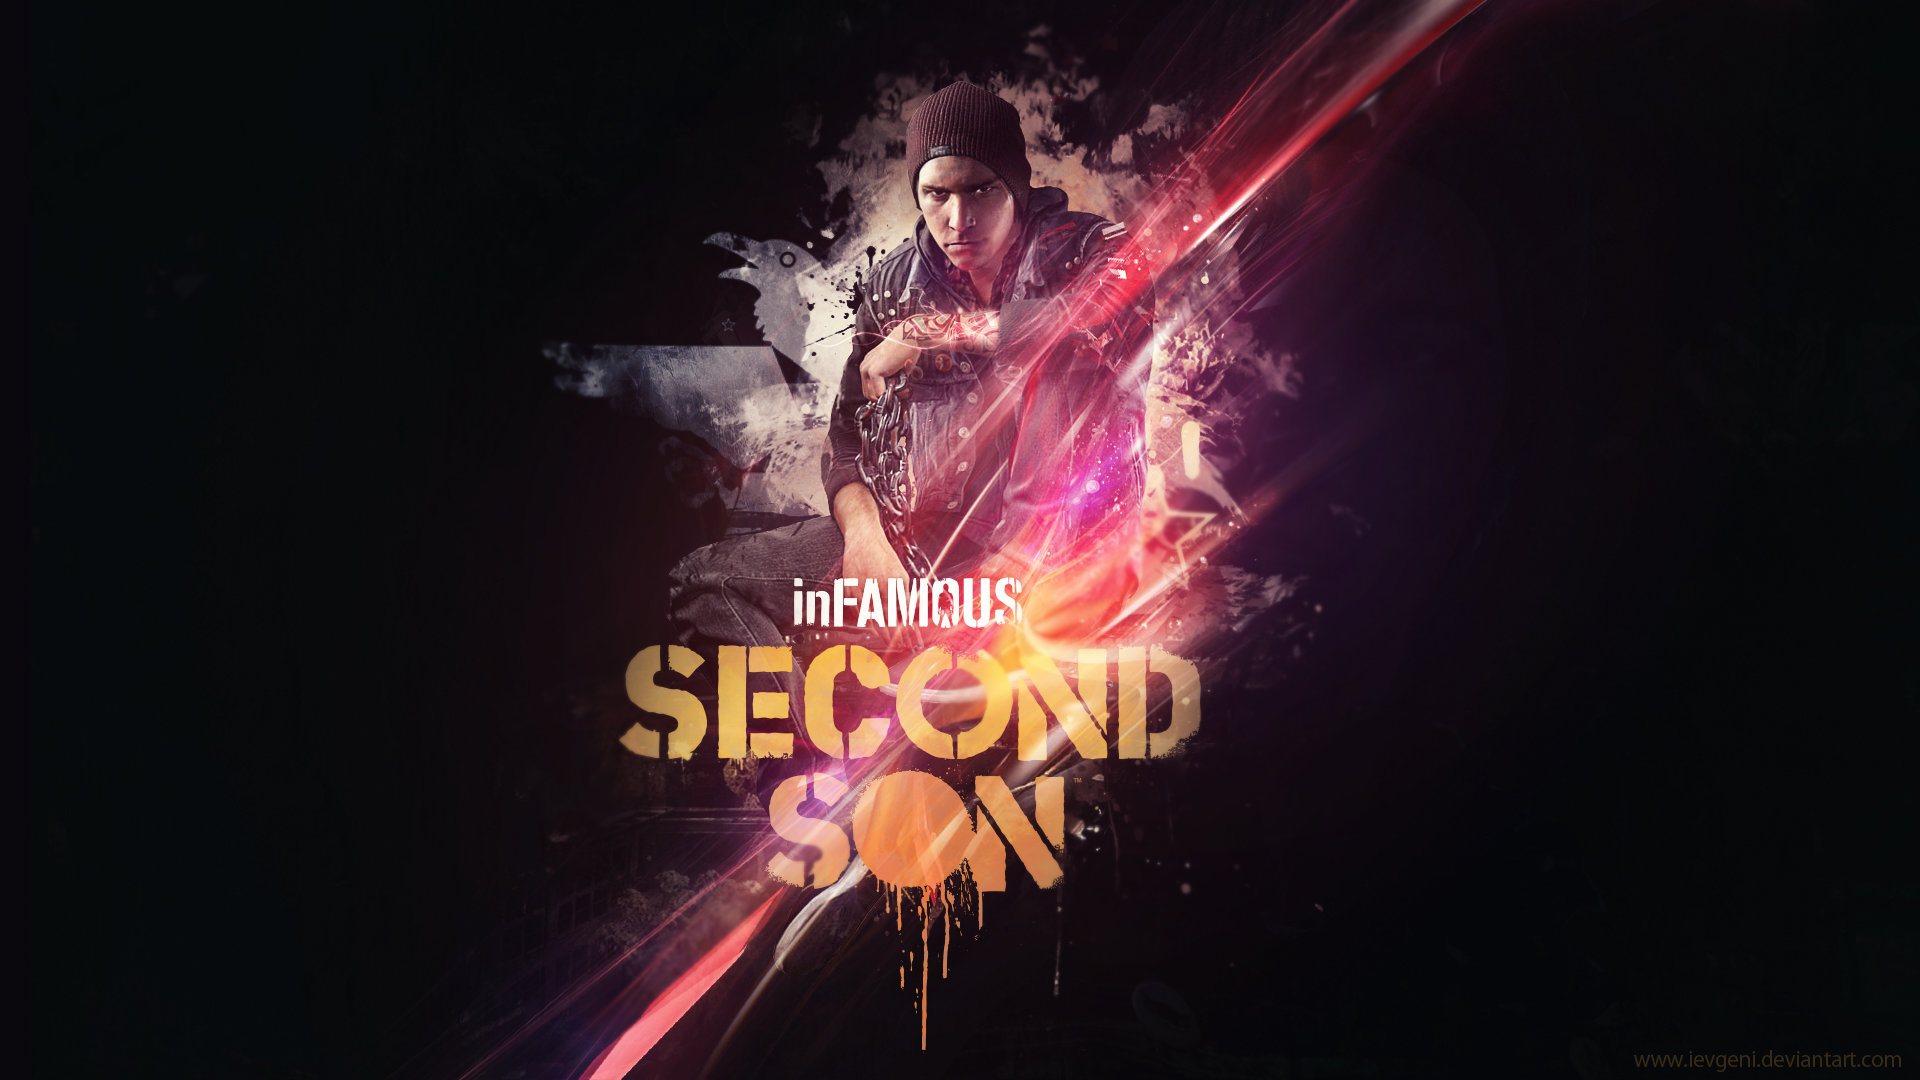 Free Infamous Second Son High Quality Wallpaper Id270092 For Hd